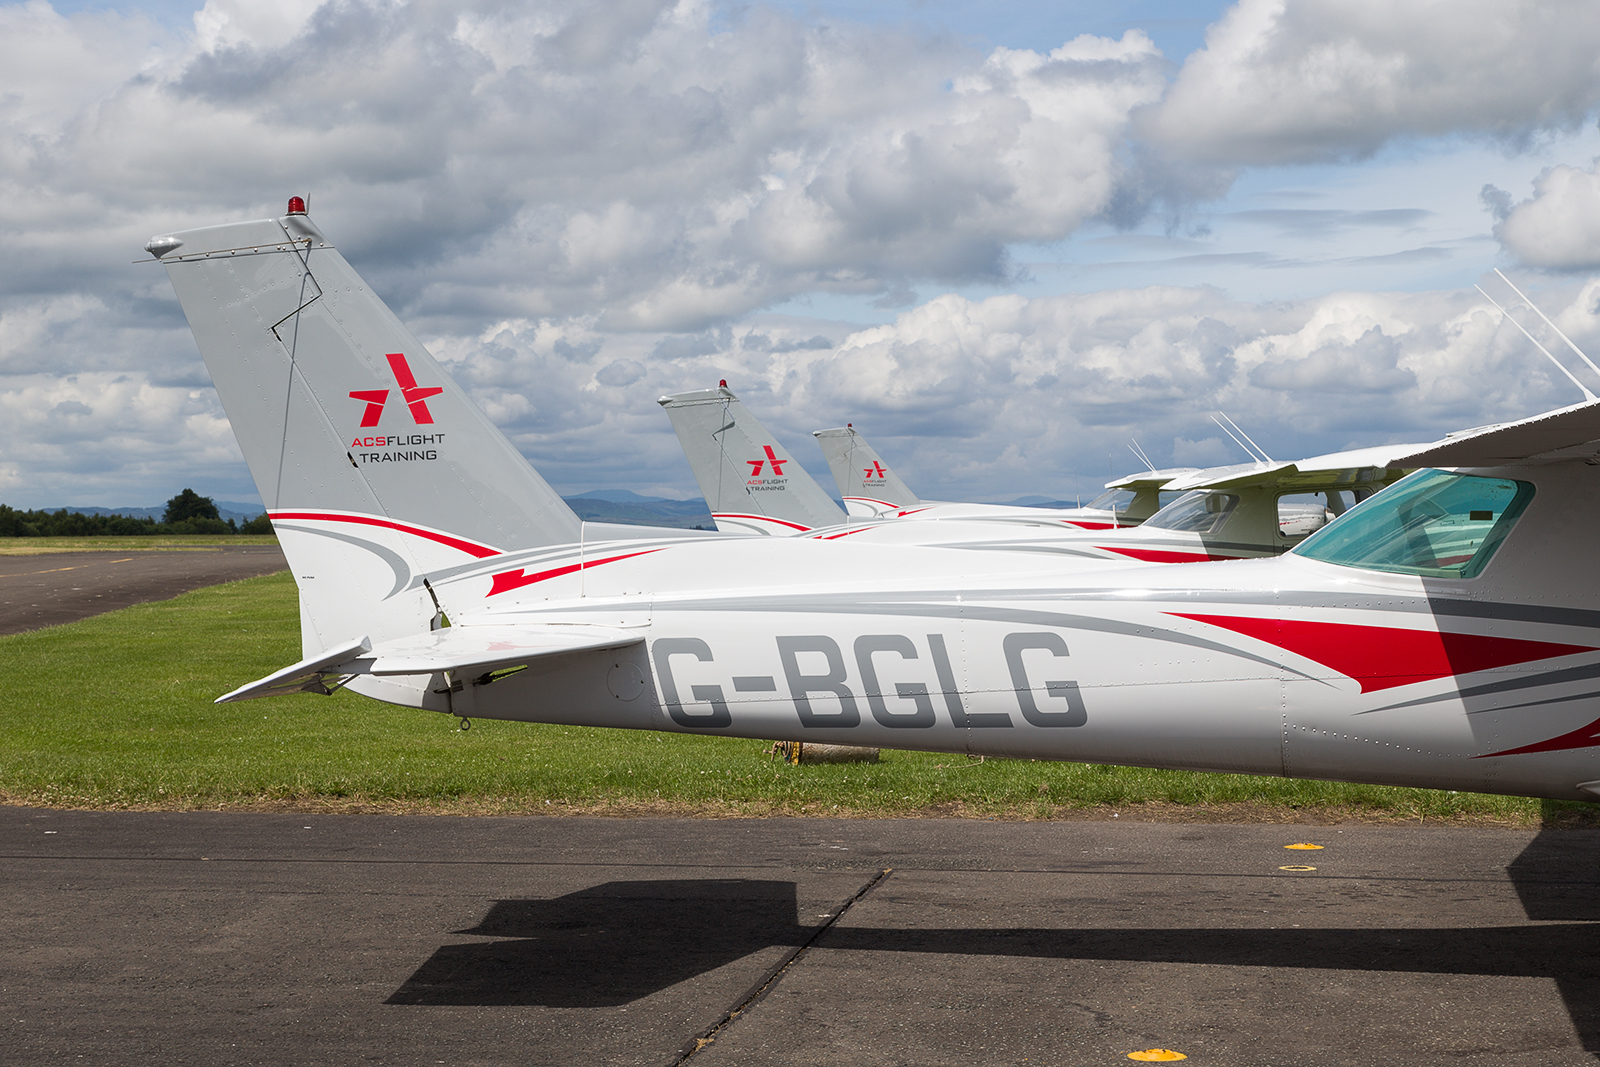 Fleet of Cessna 152 Aircraft